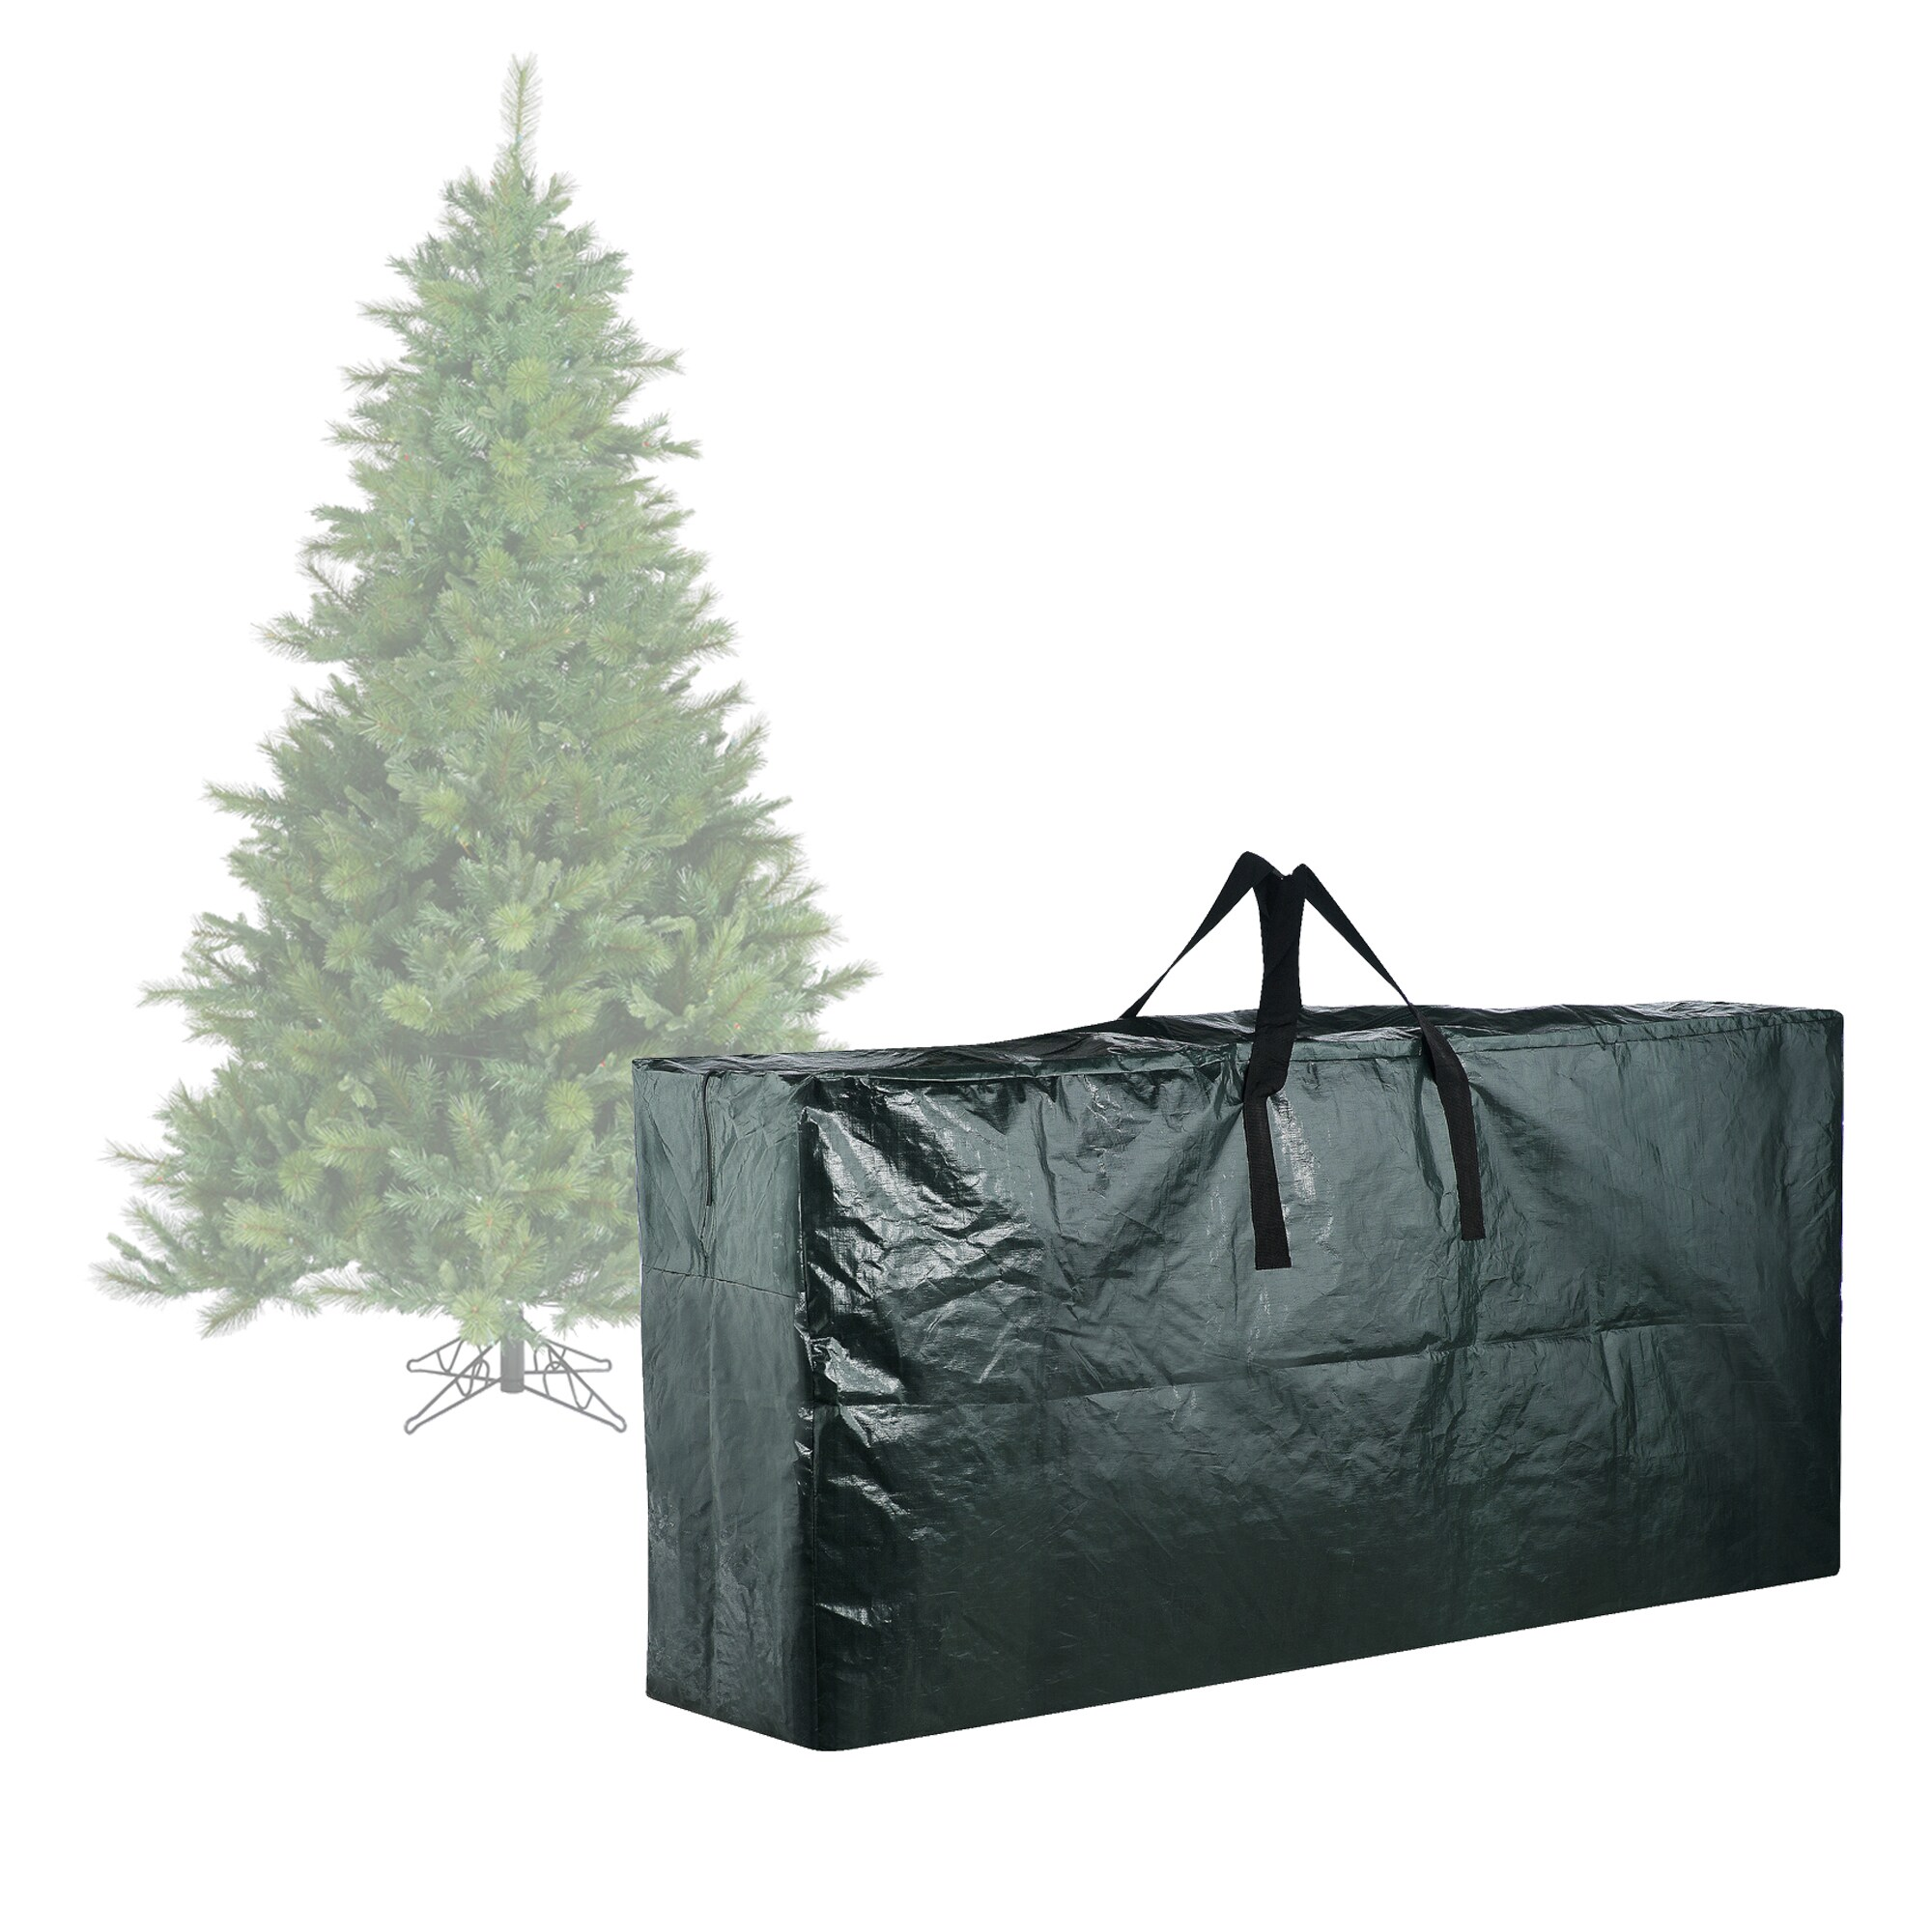 Elf Stor Extra Large Christmas Tree Bag Holiday For Trees Up To 9 Ft Free Shipping On Orders Over 45 11816724